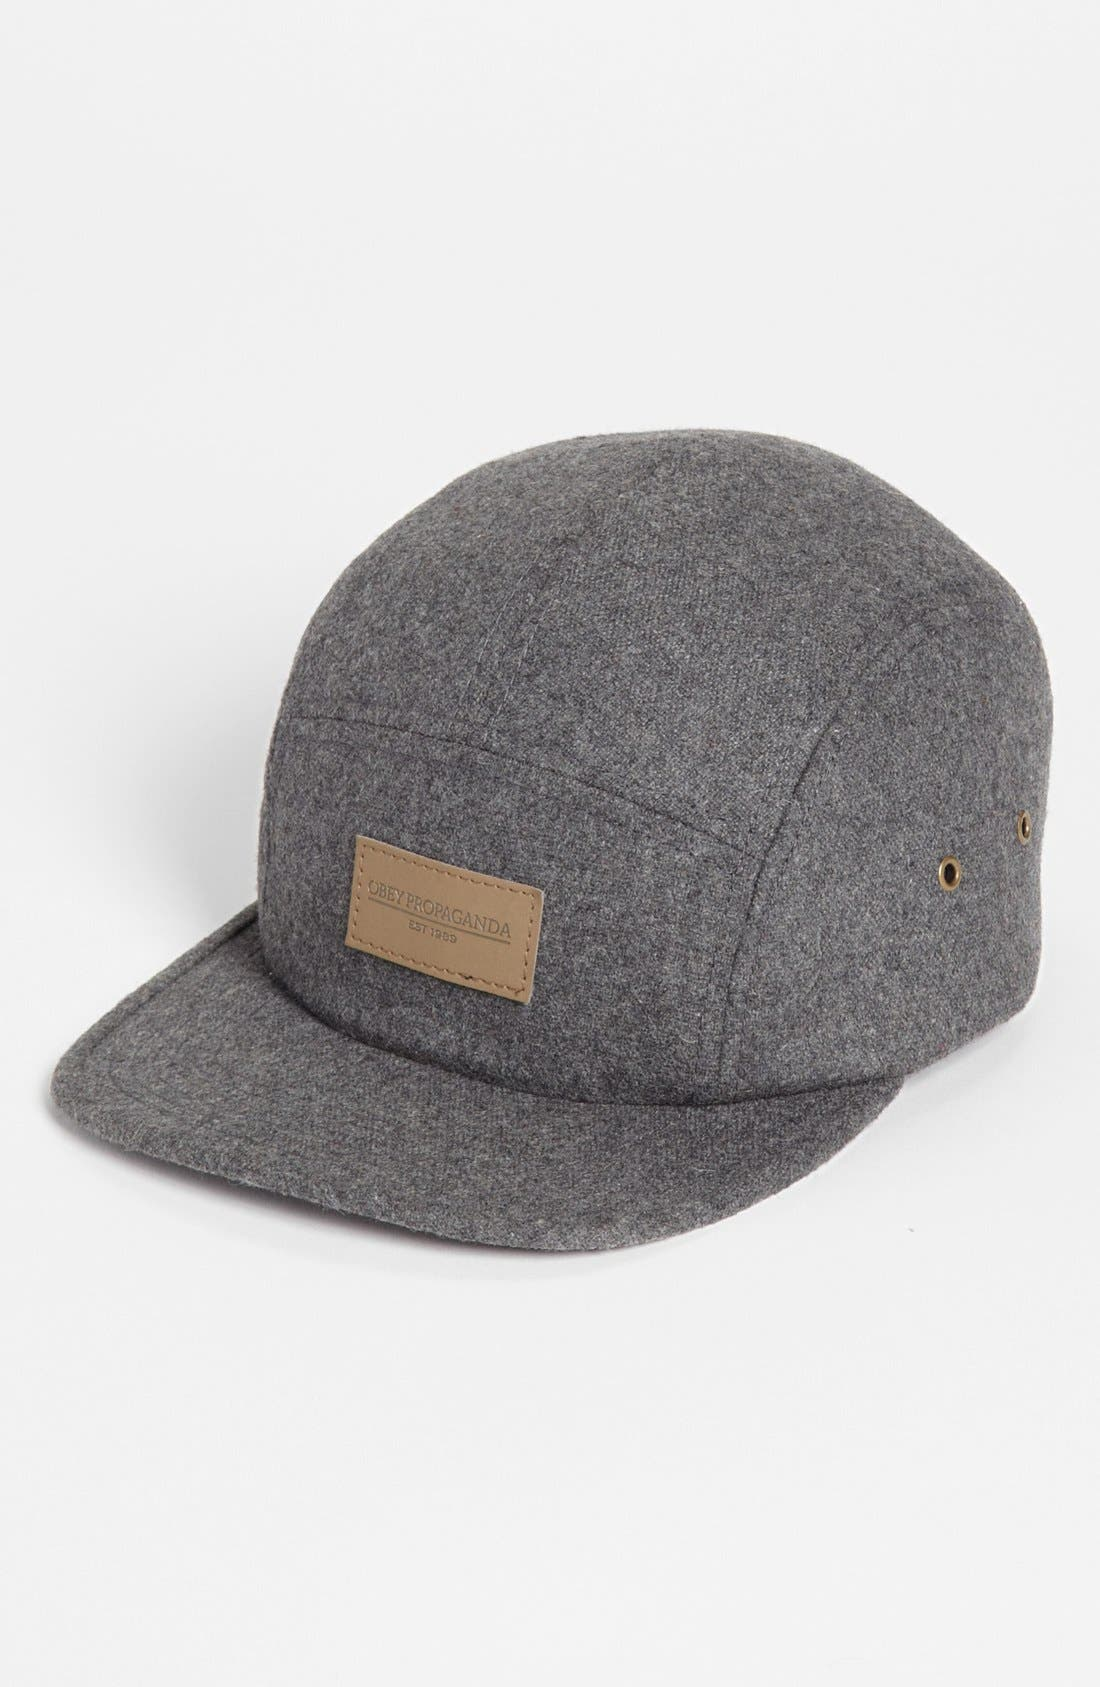 OBEY 'Northern' Wool Cap, Main, color, 020